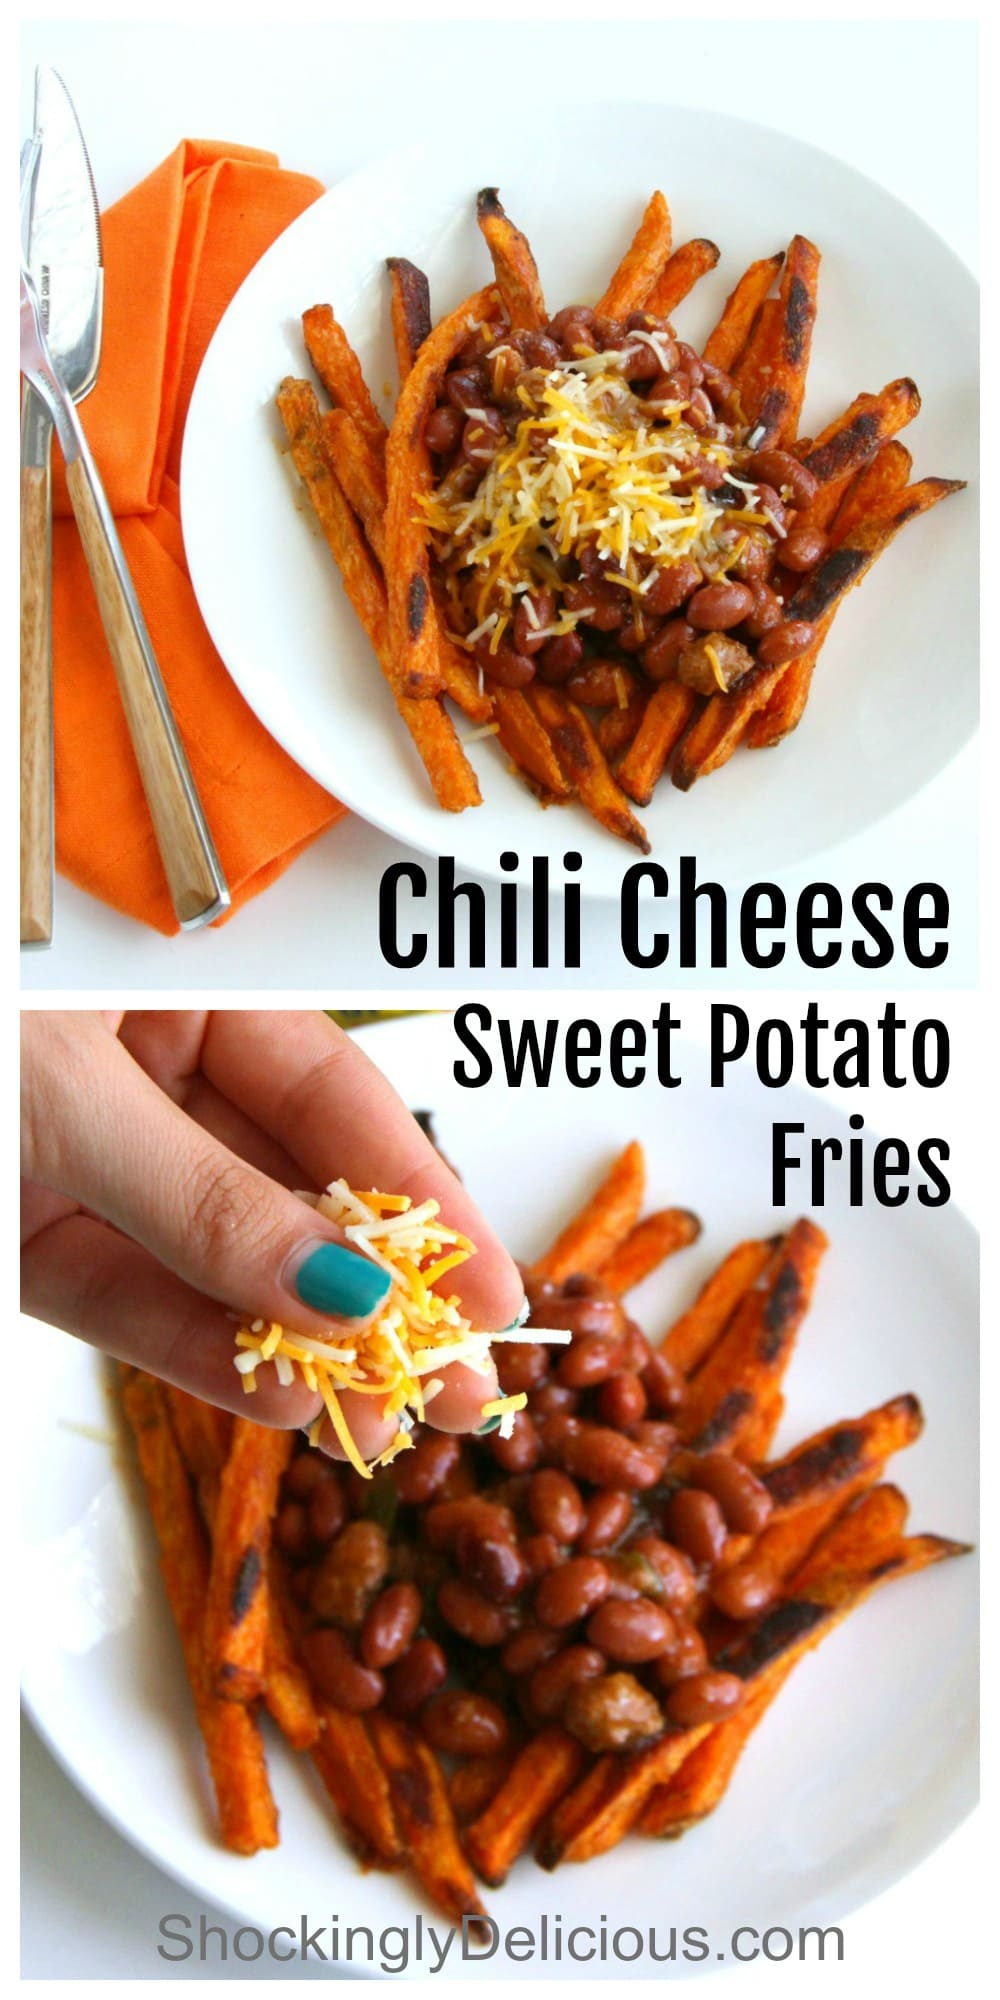 Chili Cheese Sweet Potato Fries easy recipe photo collage for Pinterest